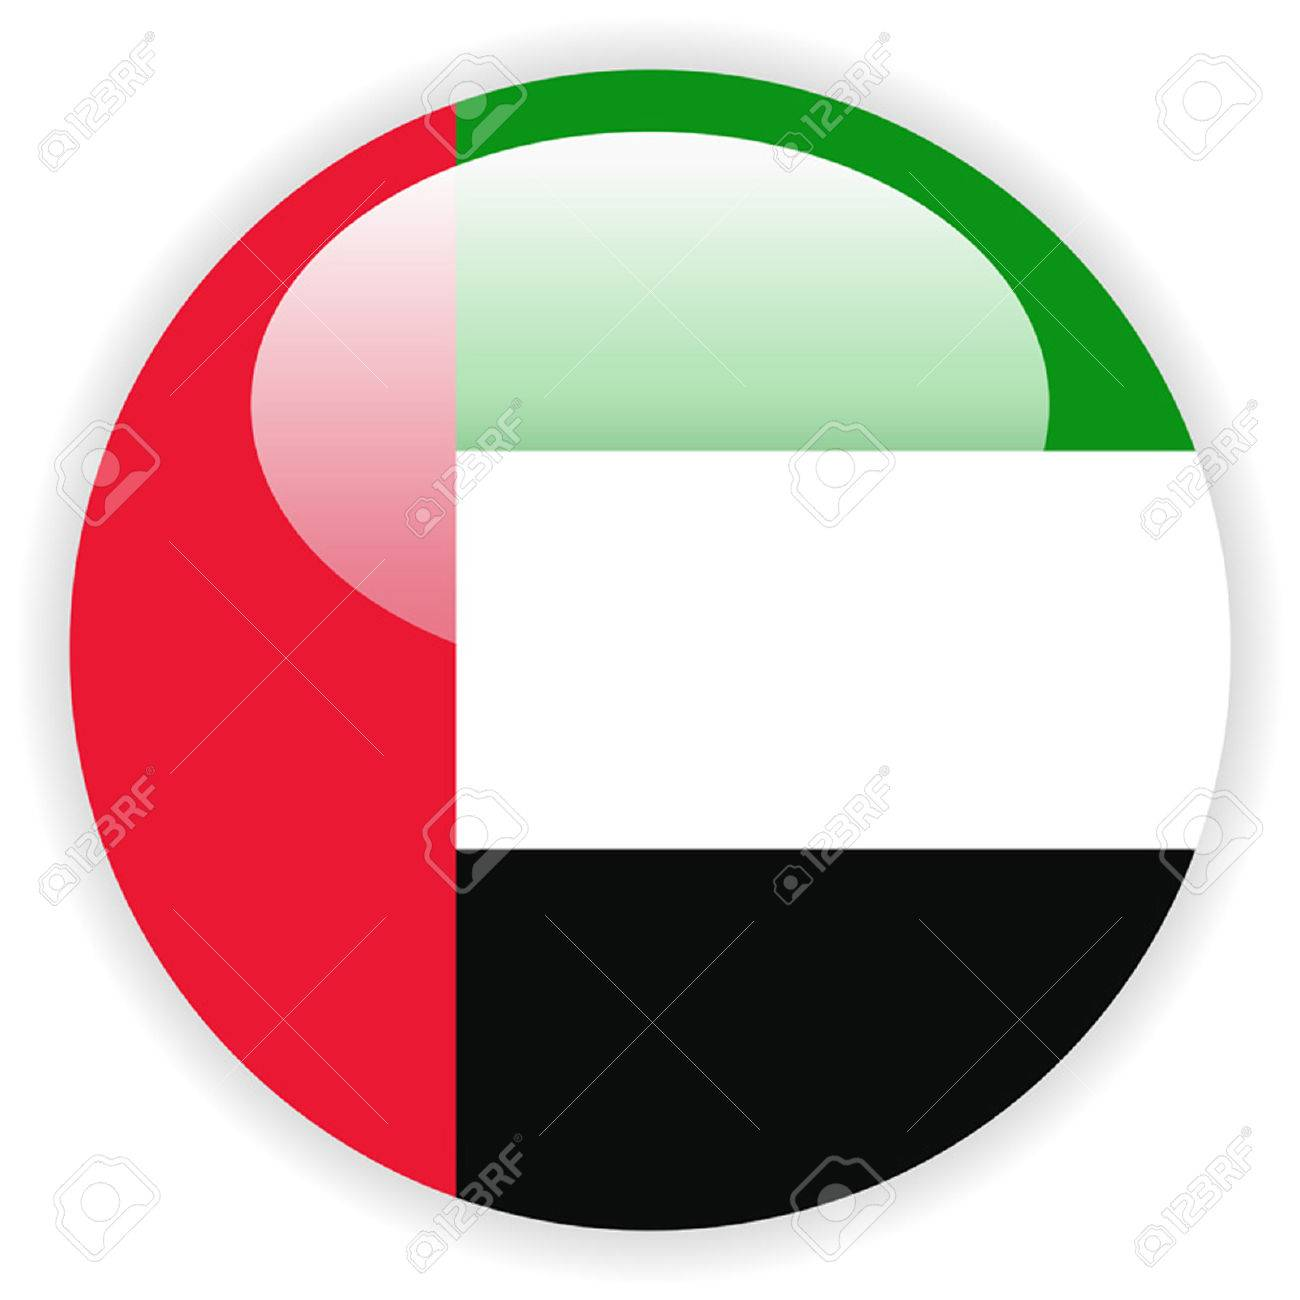 united arab emirates flag template royalty free cliparts vectors